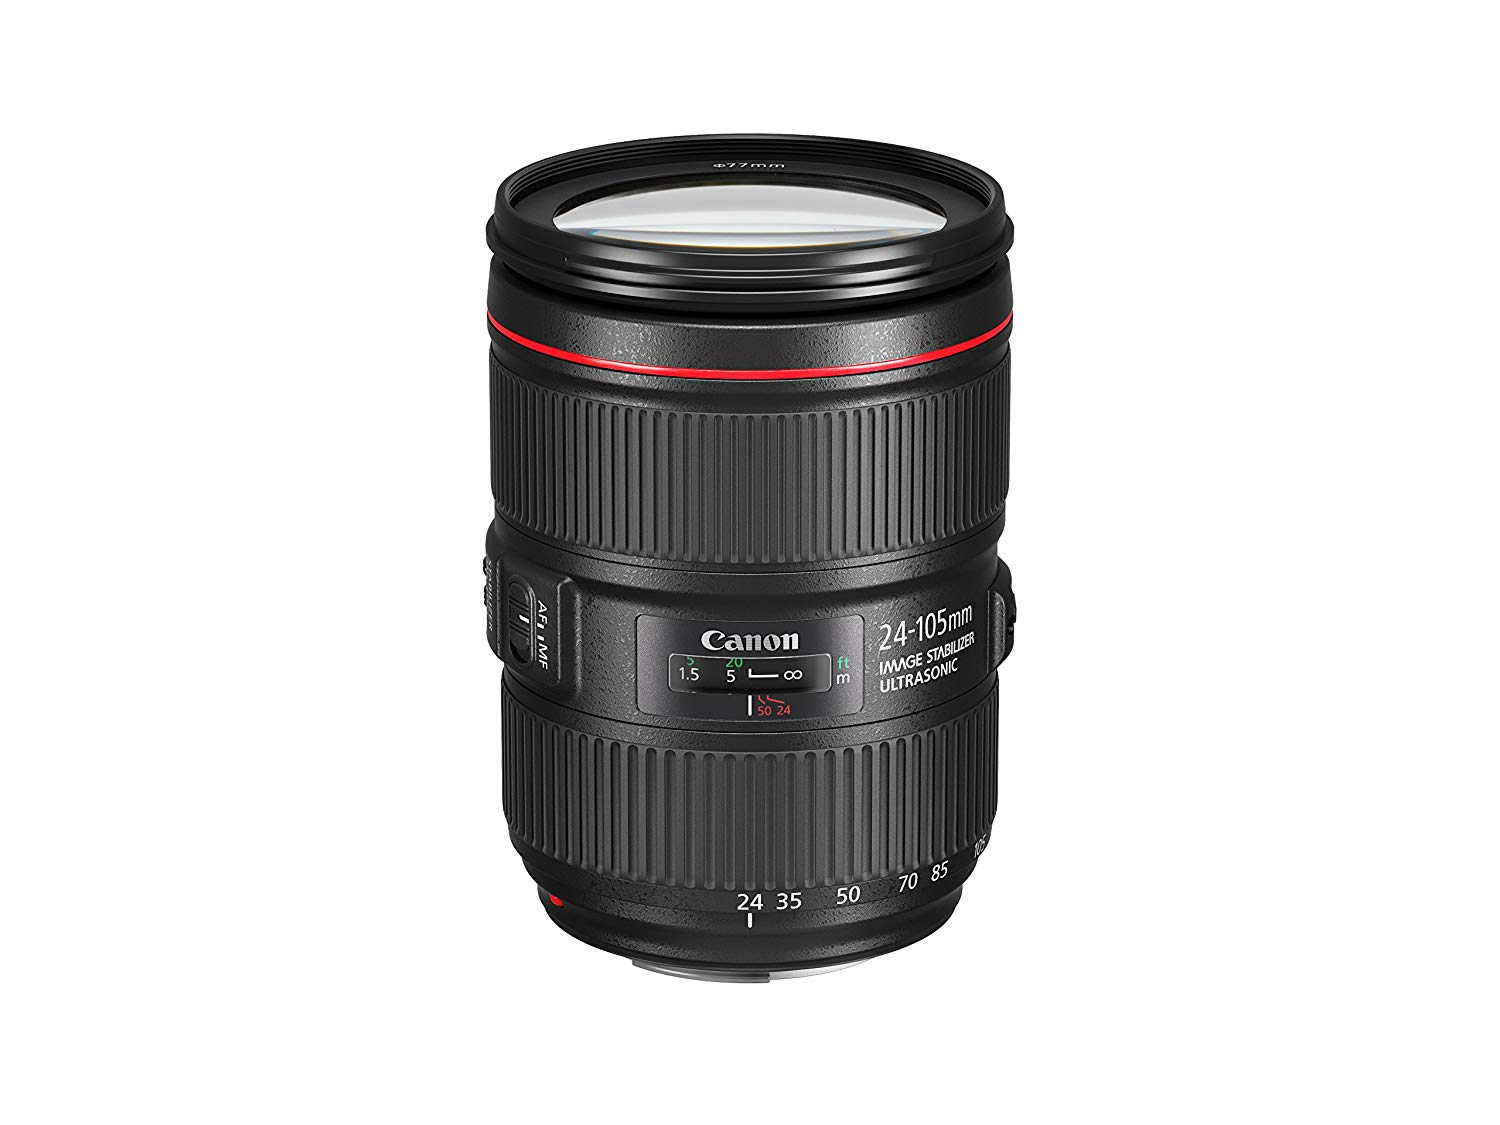 Canon EF 24-105mm f/4L IS II USM SLR Lens for Cameras